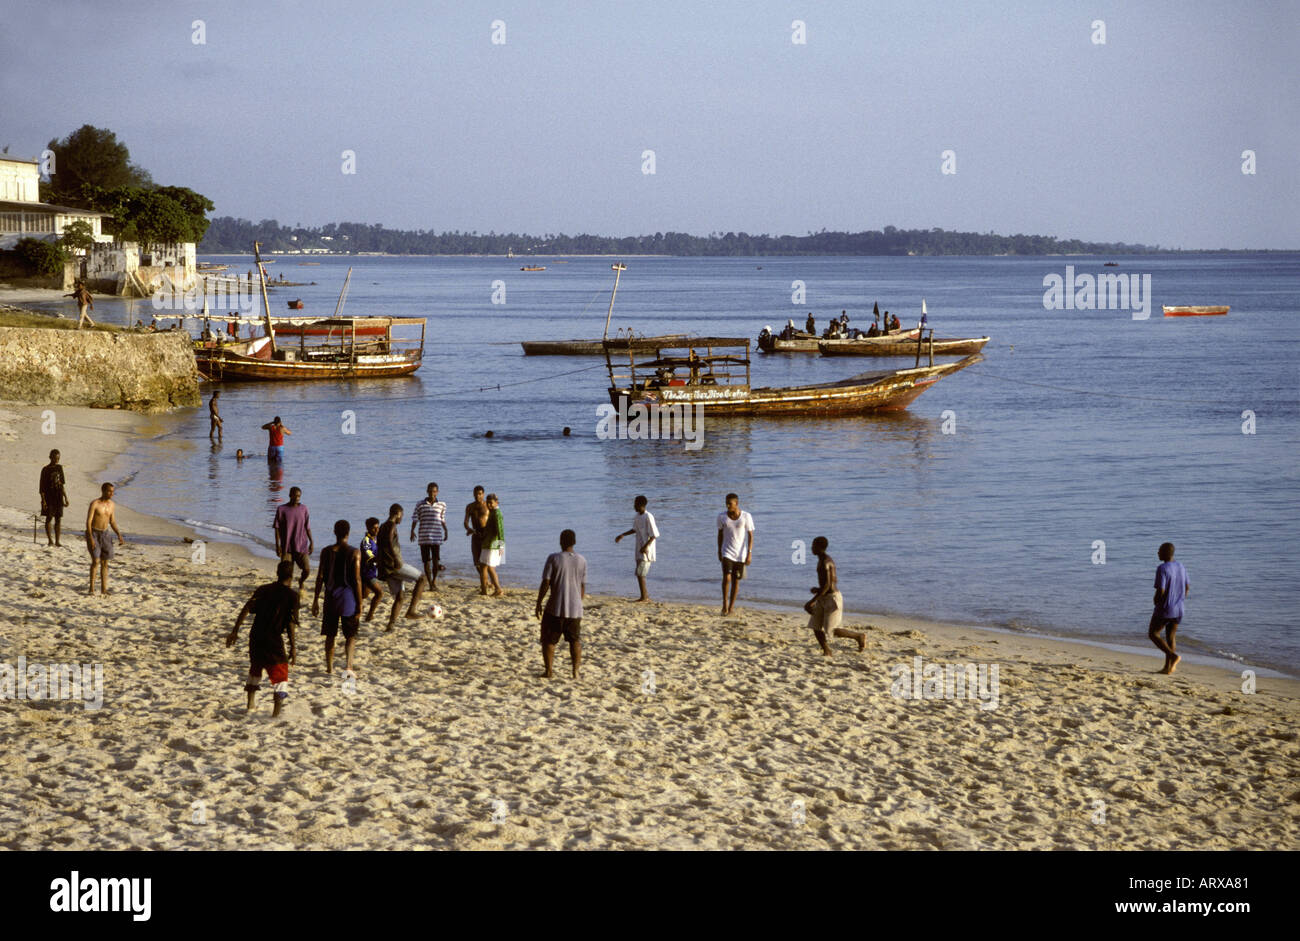 A group of young men playing soccer or football on a sandy beach near the stone town Zanzibar Tanzania East Africa - Stock Image